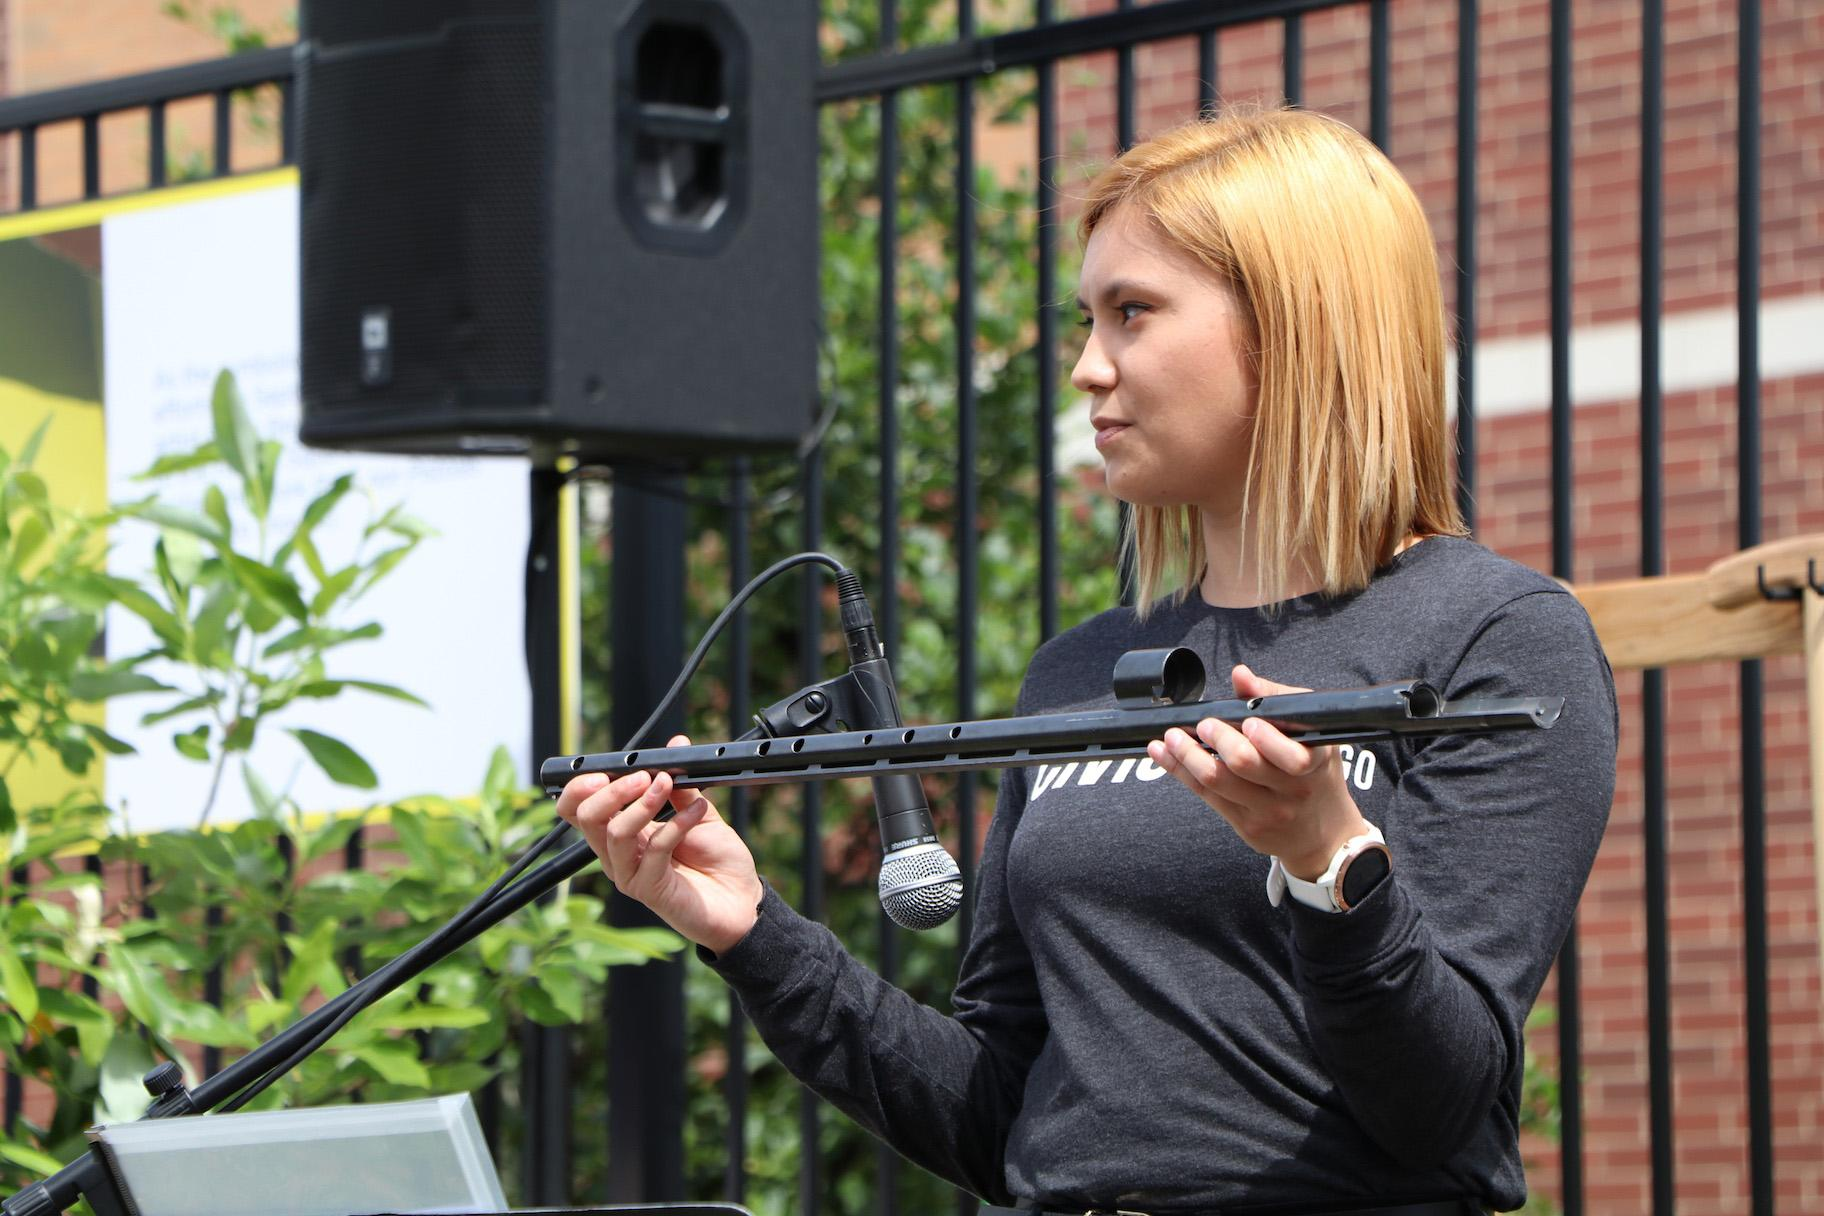 Alexandria Hoffman holds a flute made from a rifle's barrel. (Evan Garcia / WTTW)